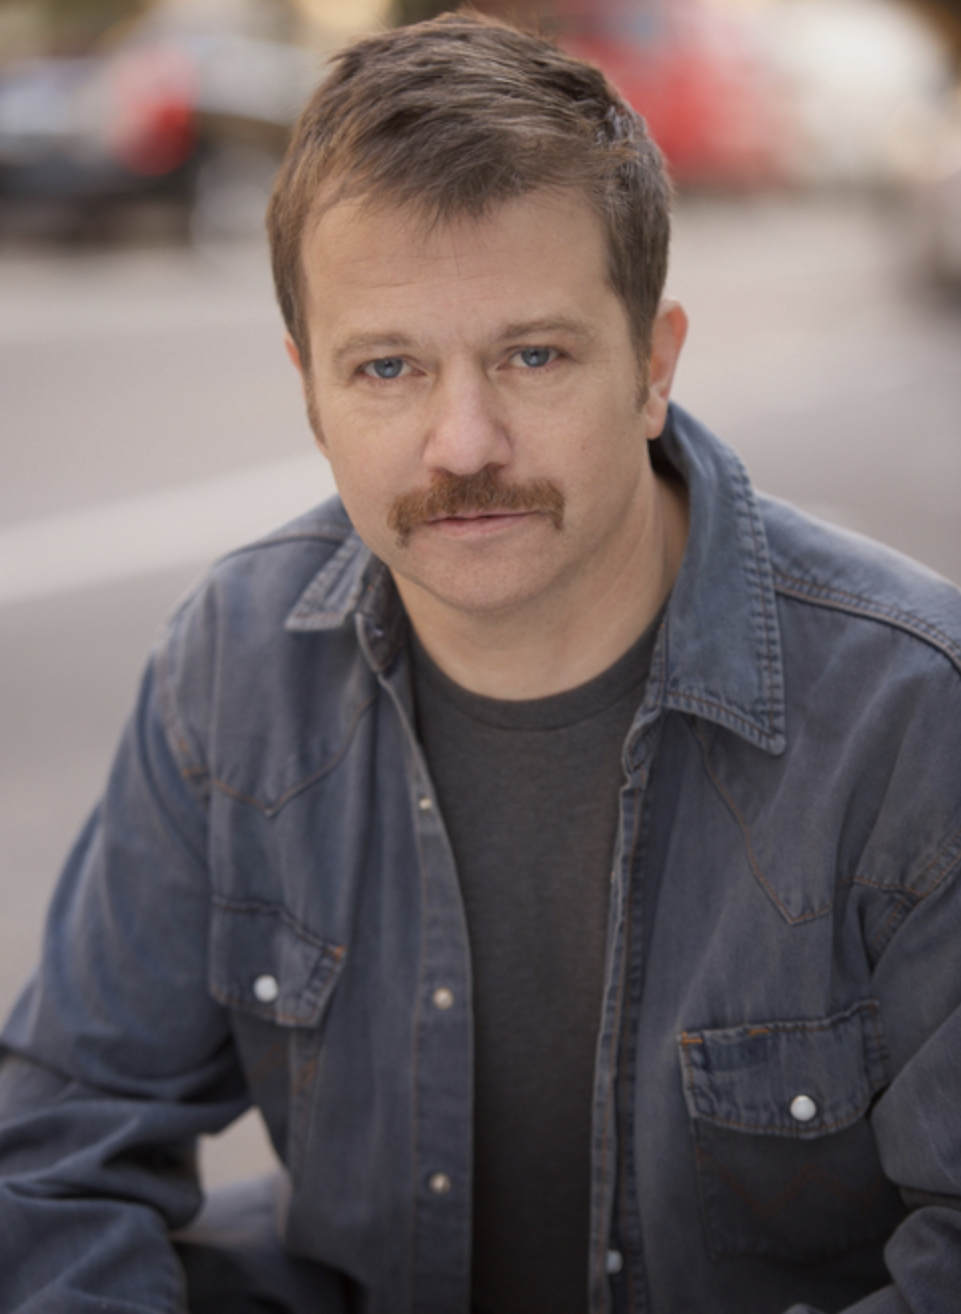 LARS ENGSTROM - Congrats to client Lars Engstrom for his booking on the upcoming second season of HBO's THE DEUCE.